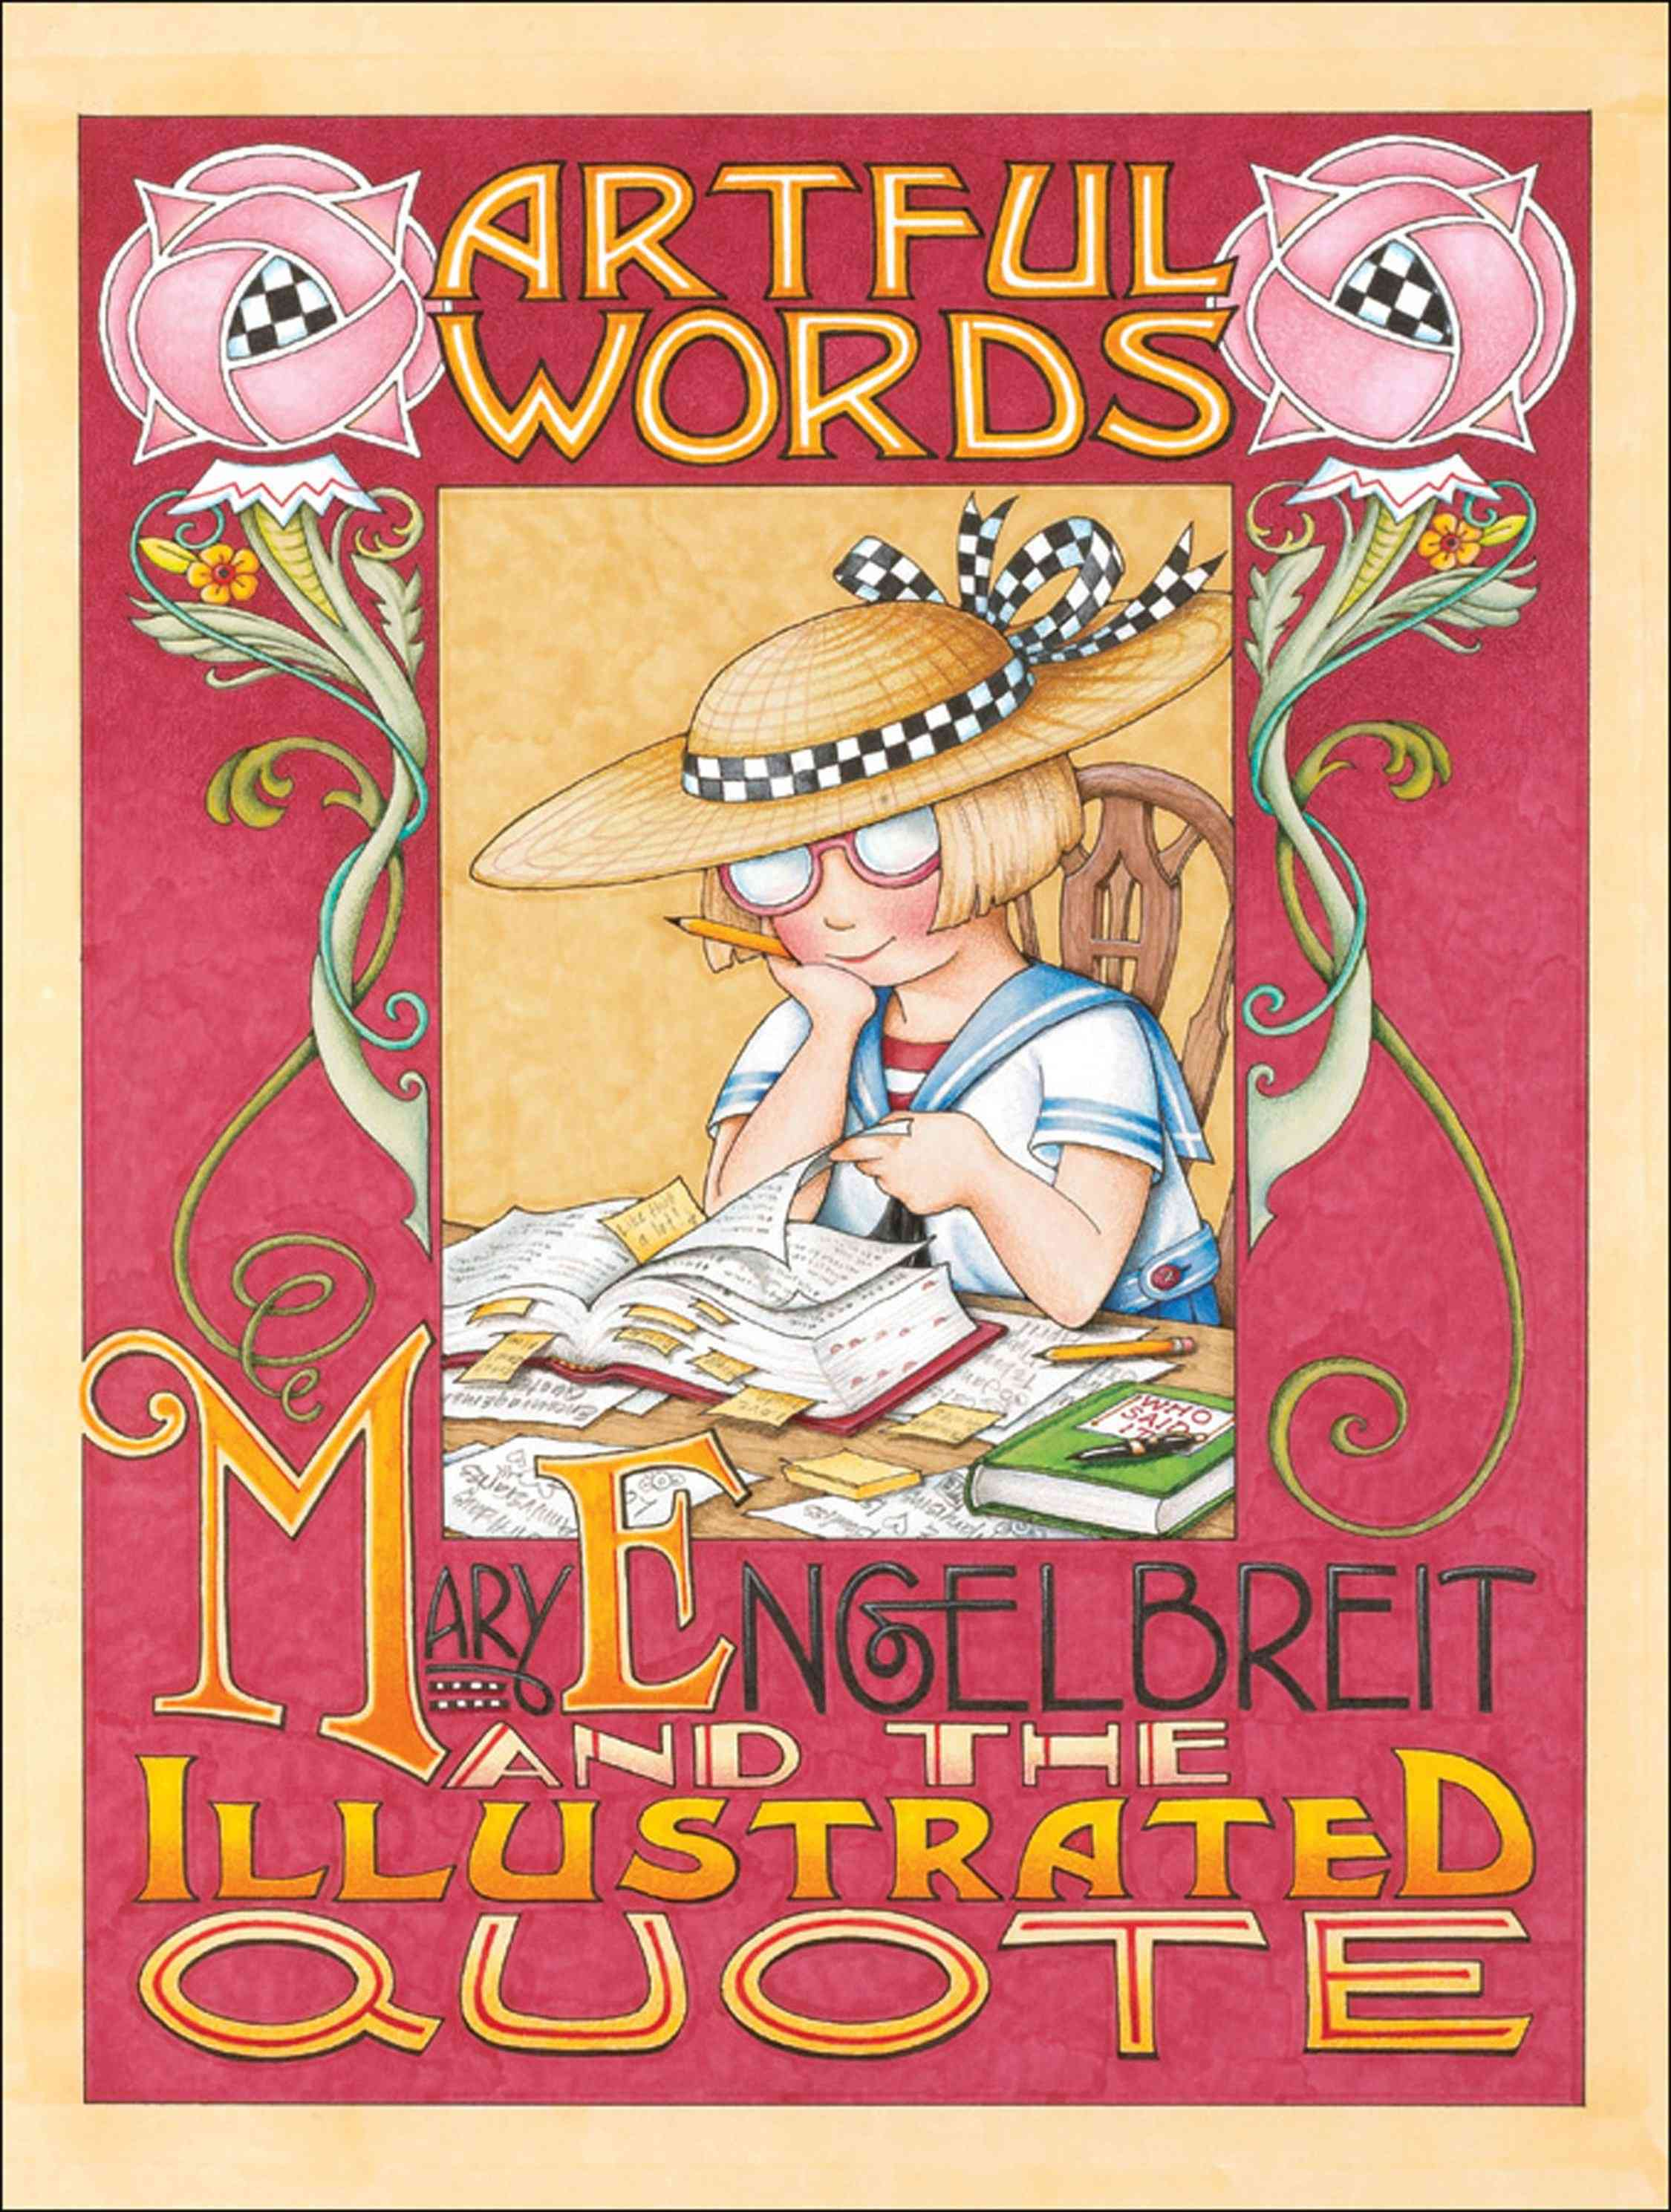 Artful Words: Mary Engelbreit And the Illustrated Quote (Hardcover)